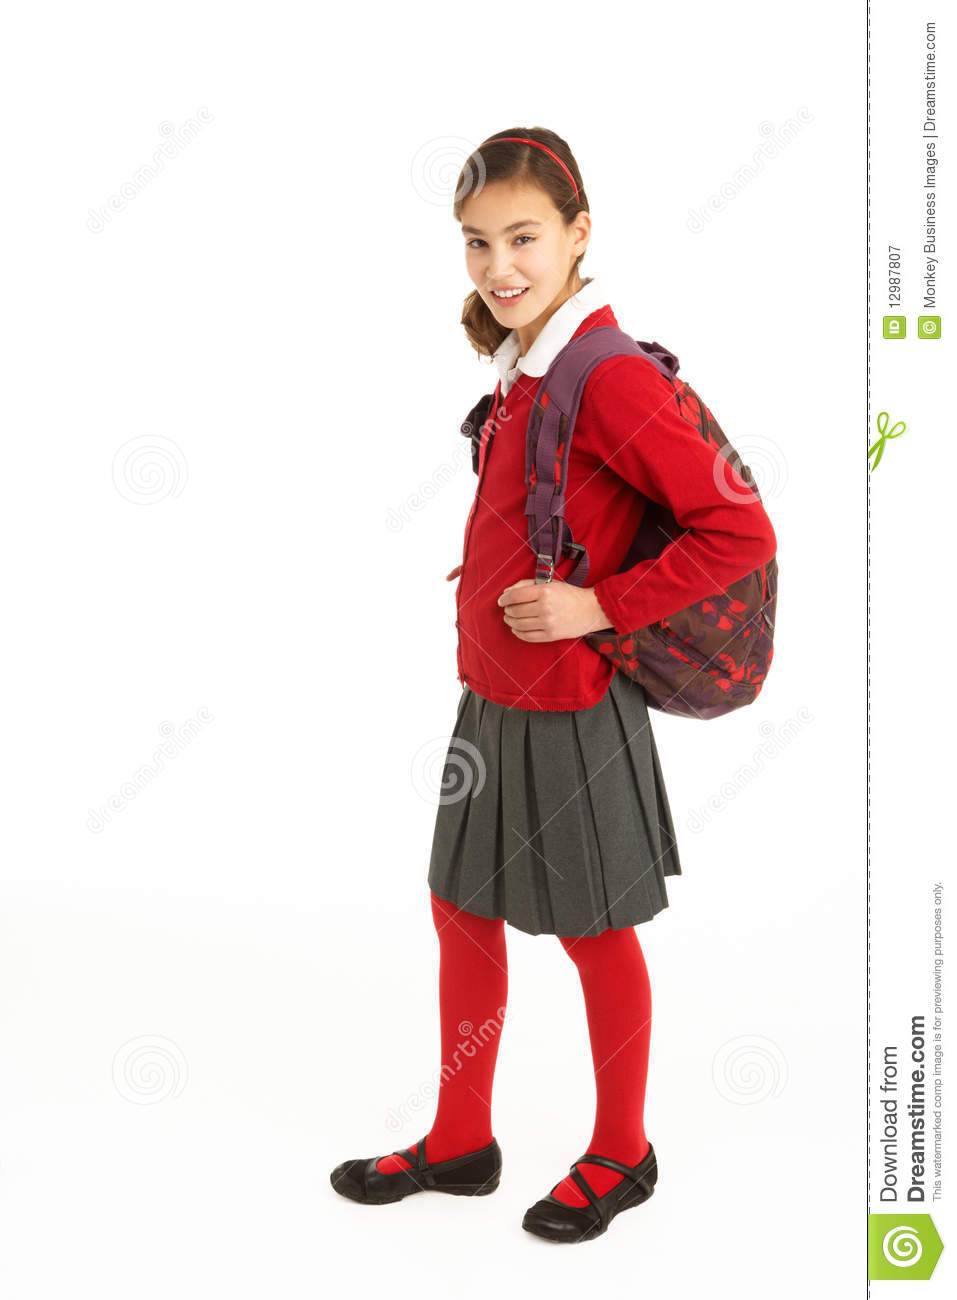 Portrait Of Female Student In Uniform Royalty Free Stock Photography ...